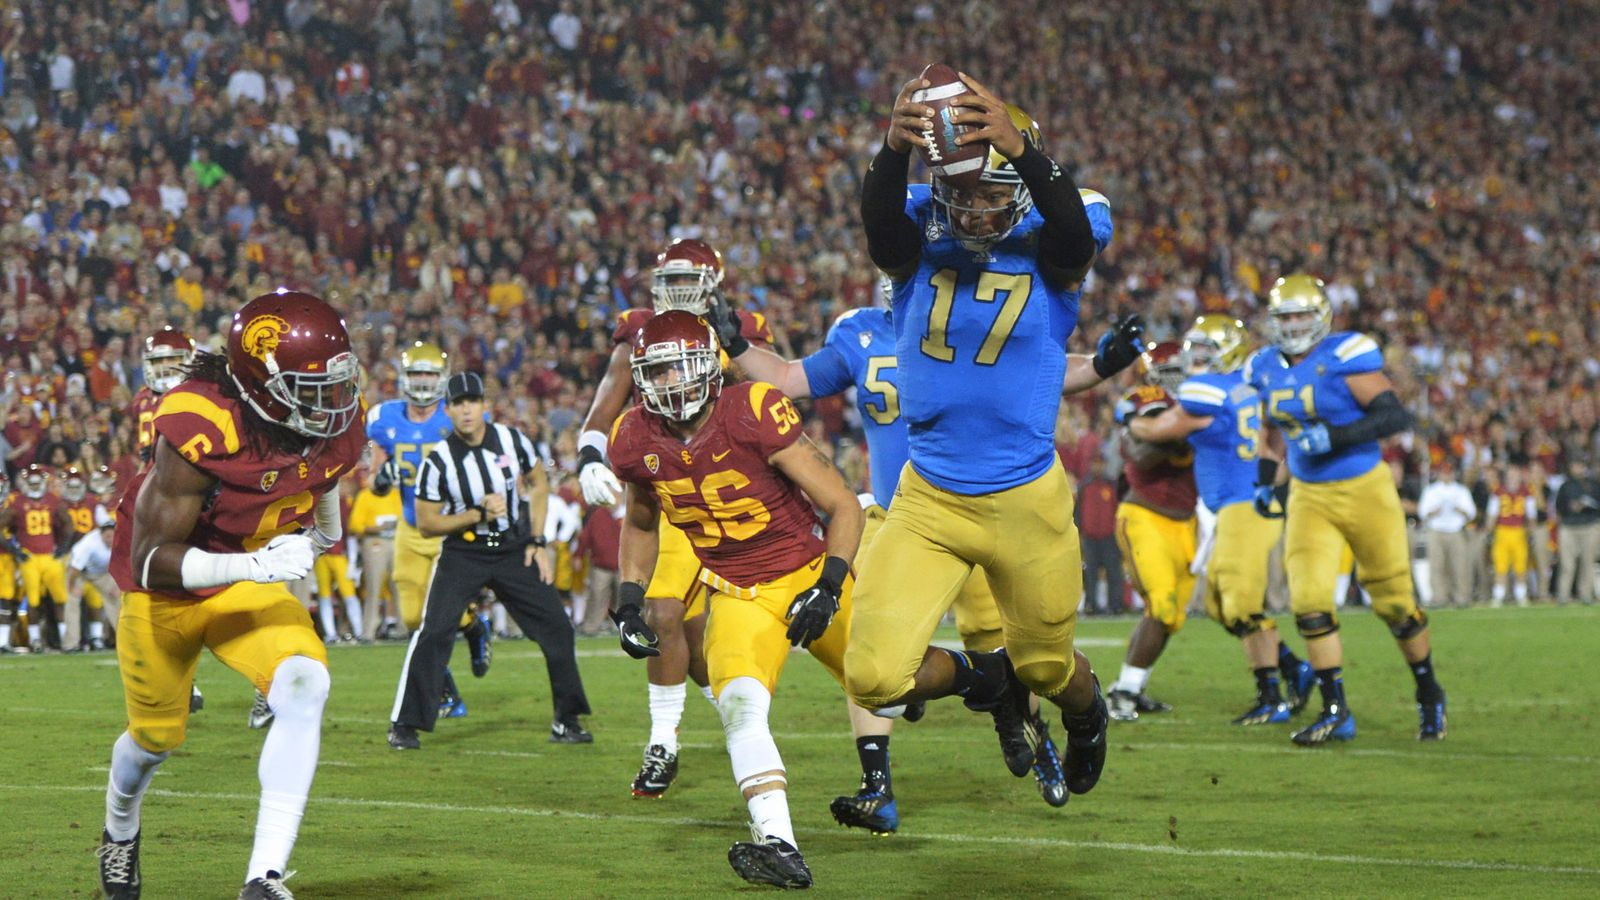 ucla college collwge football scores